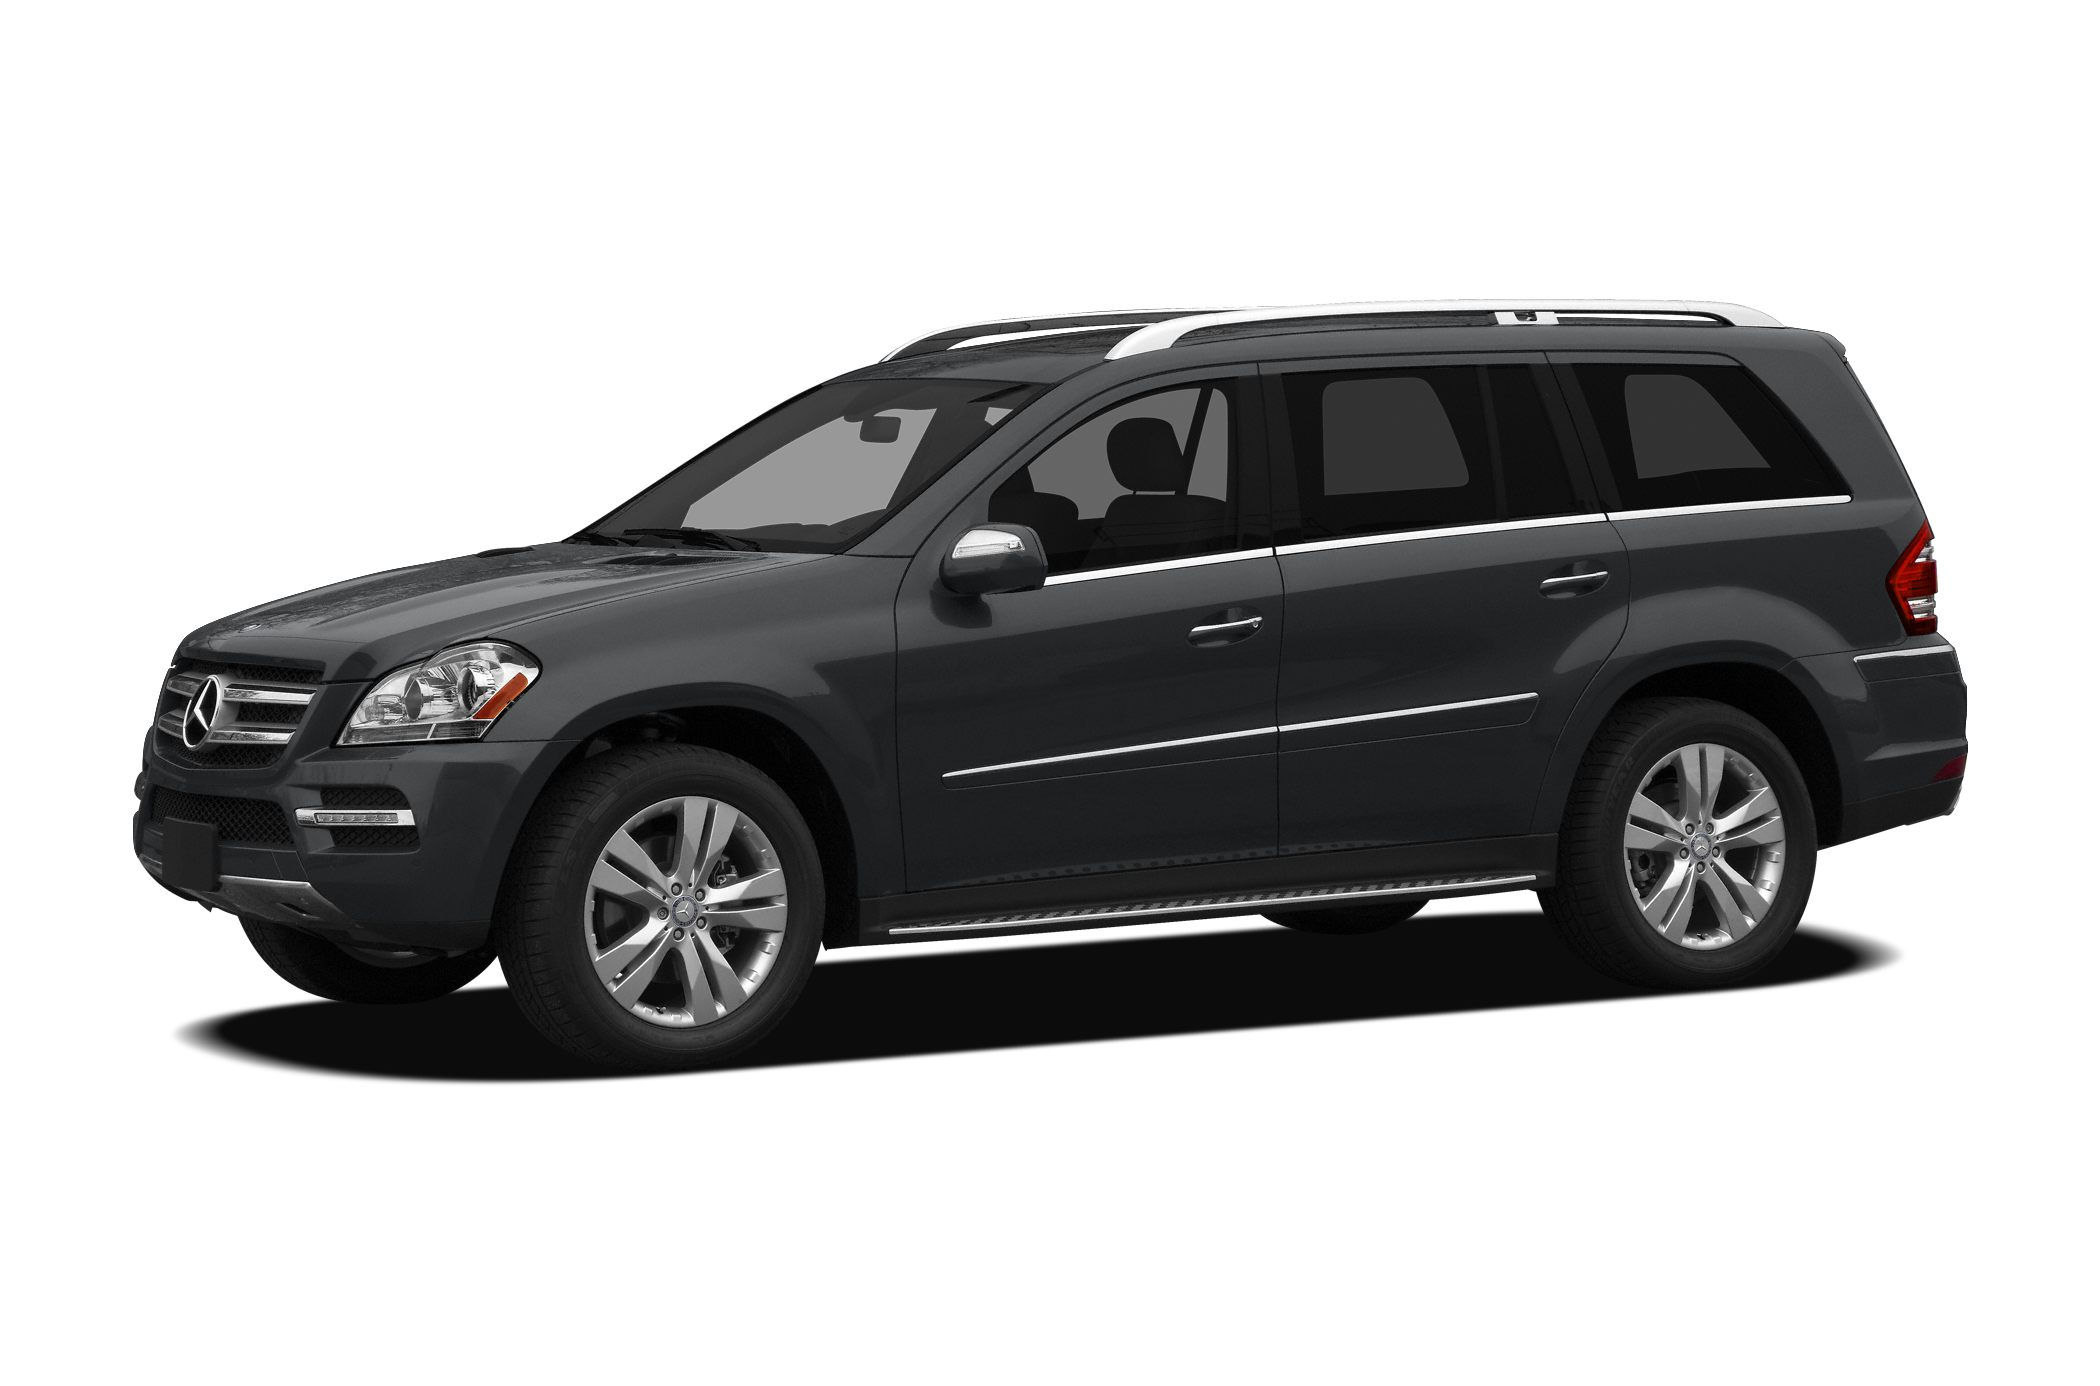 2011 Mercedes-Benz GL-Class GL450 4MATIC SUV for sale in Laurel for $40,097 with 25,865 miles.